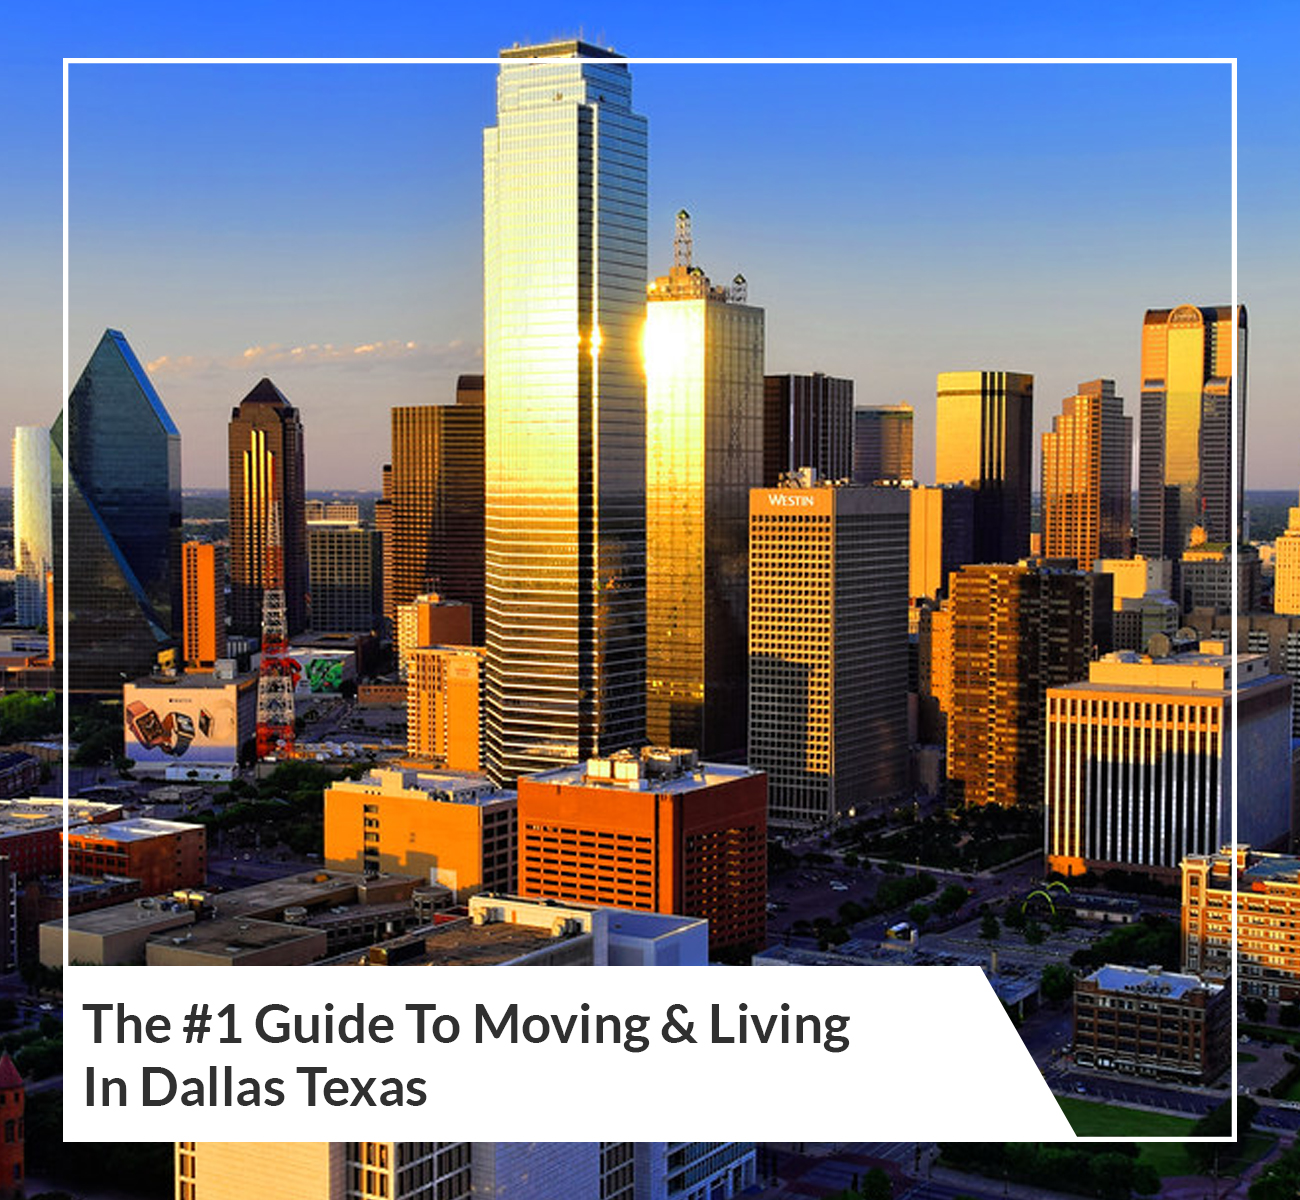 Moving & Living in Dallas, TX